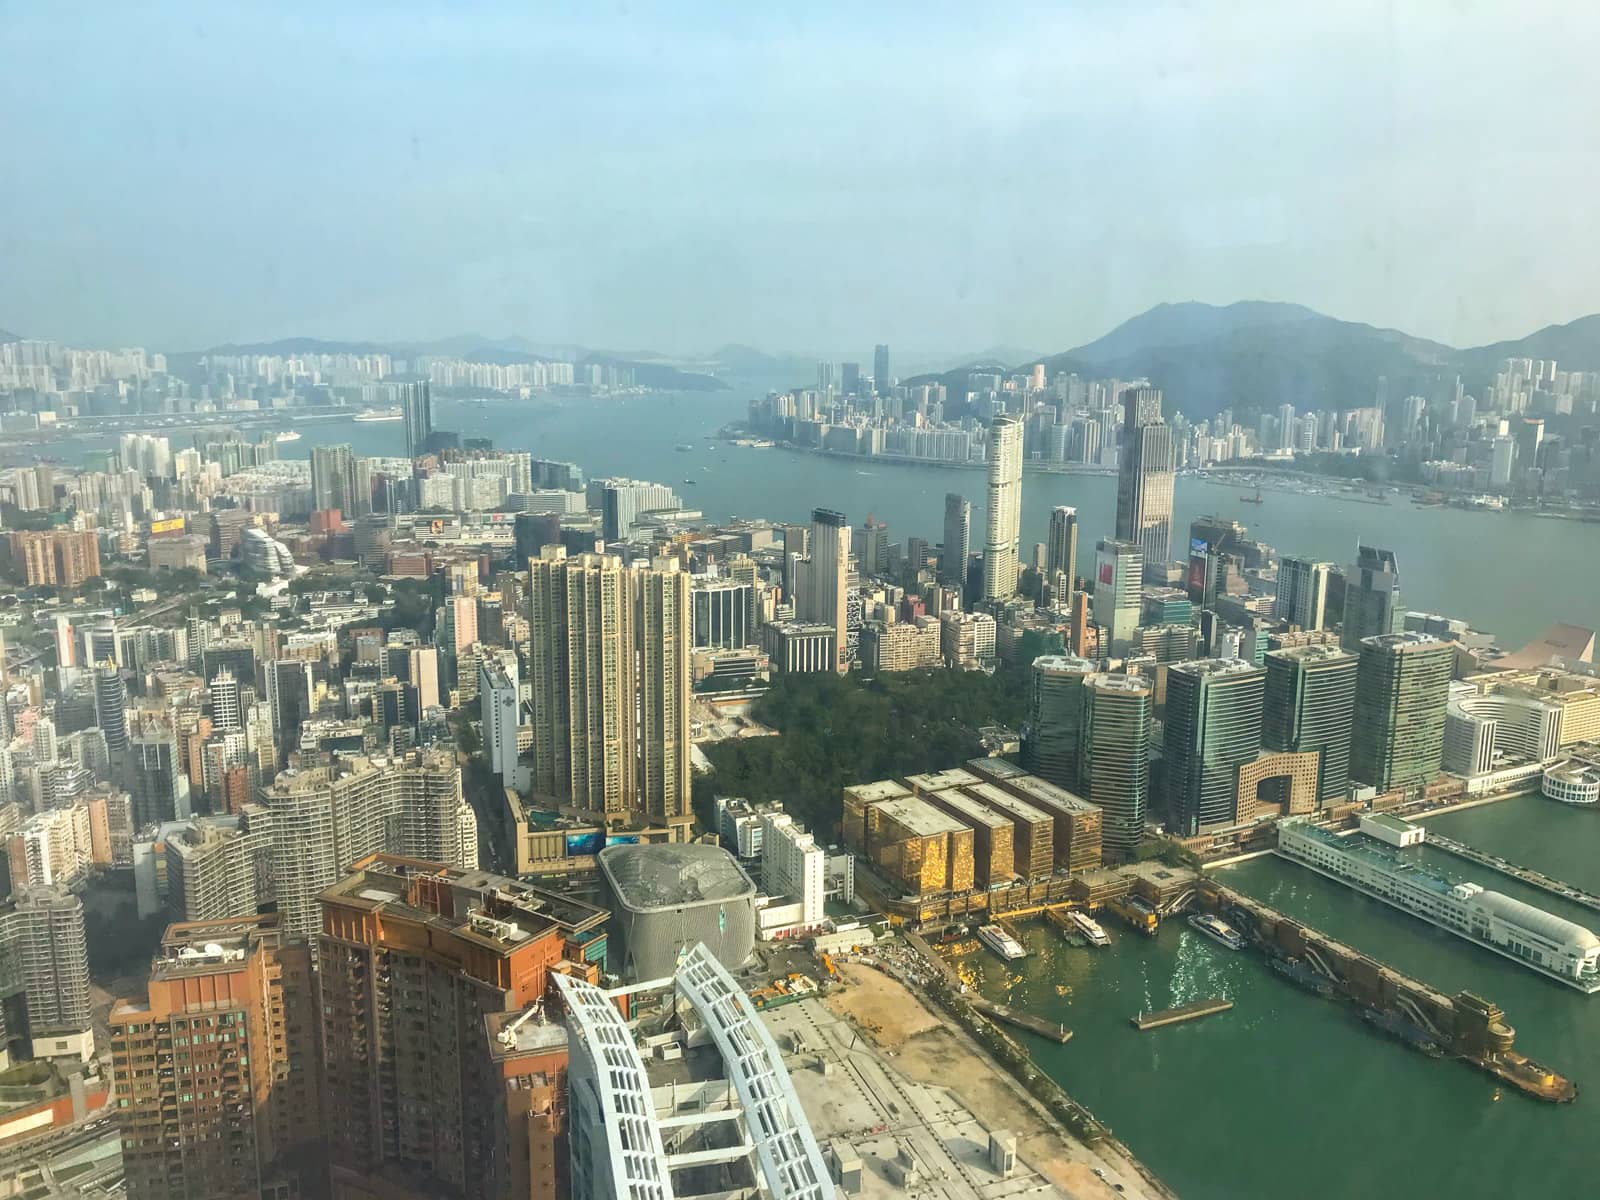 A view of the city of Hong Kong, with the harbour and many buildings visible, seen from the inside of a glass window at a high vantage point